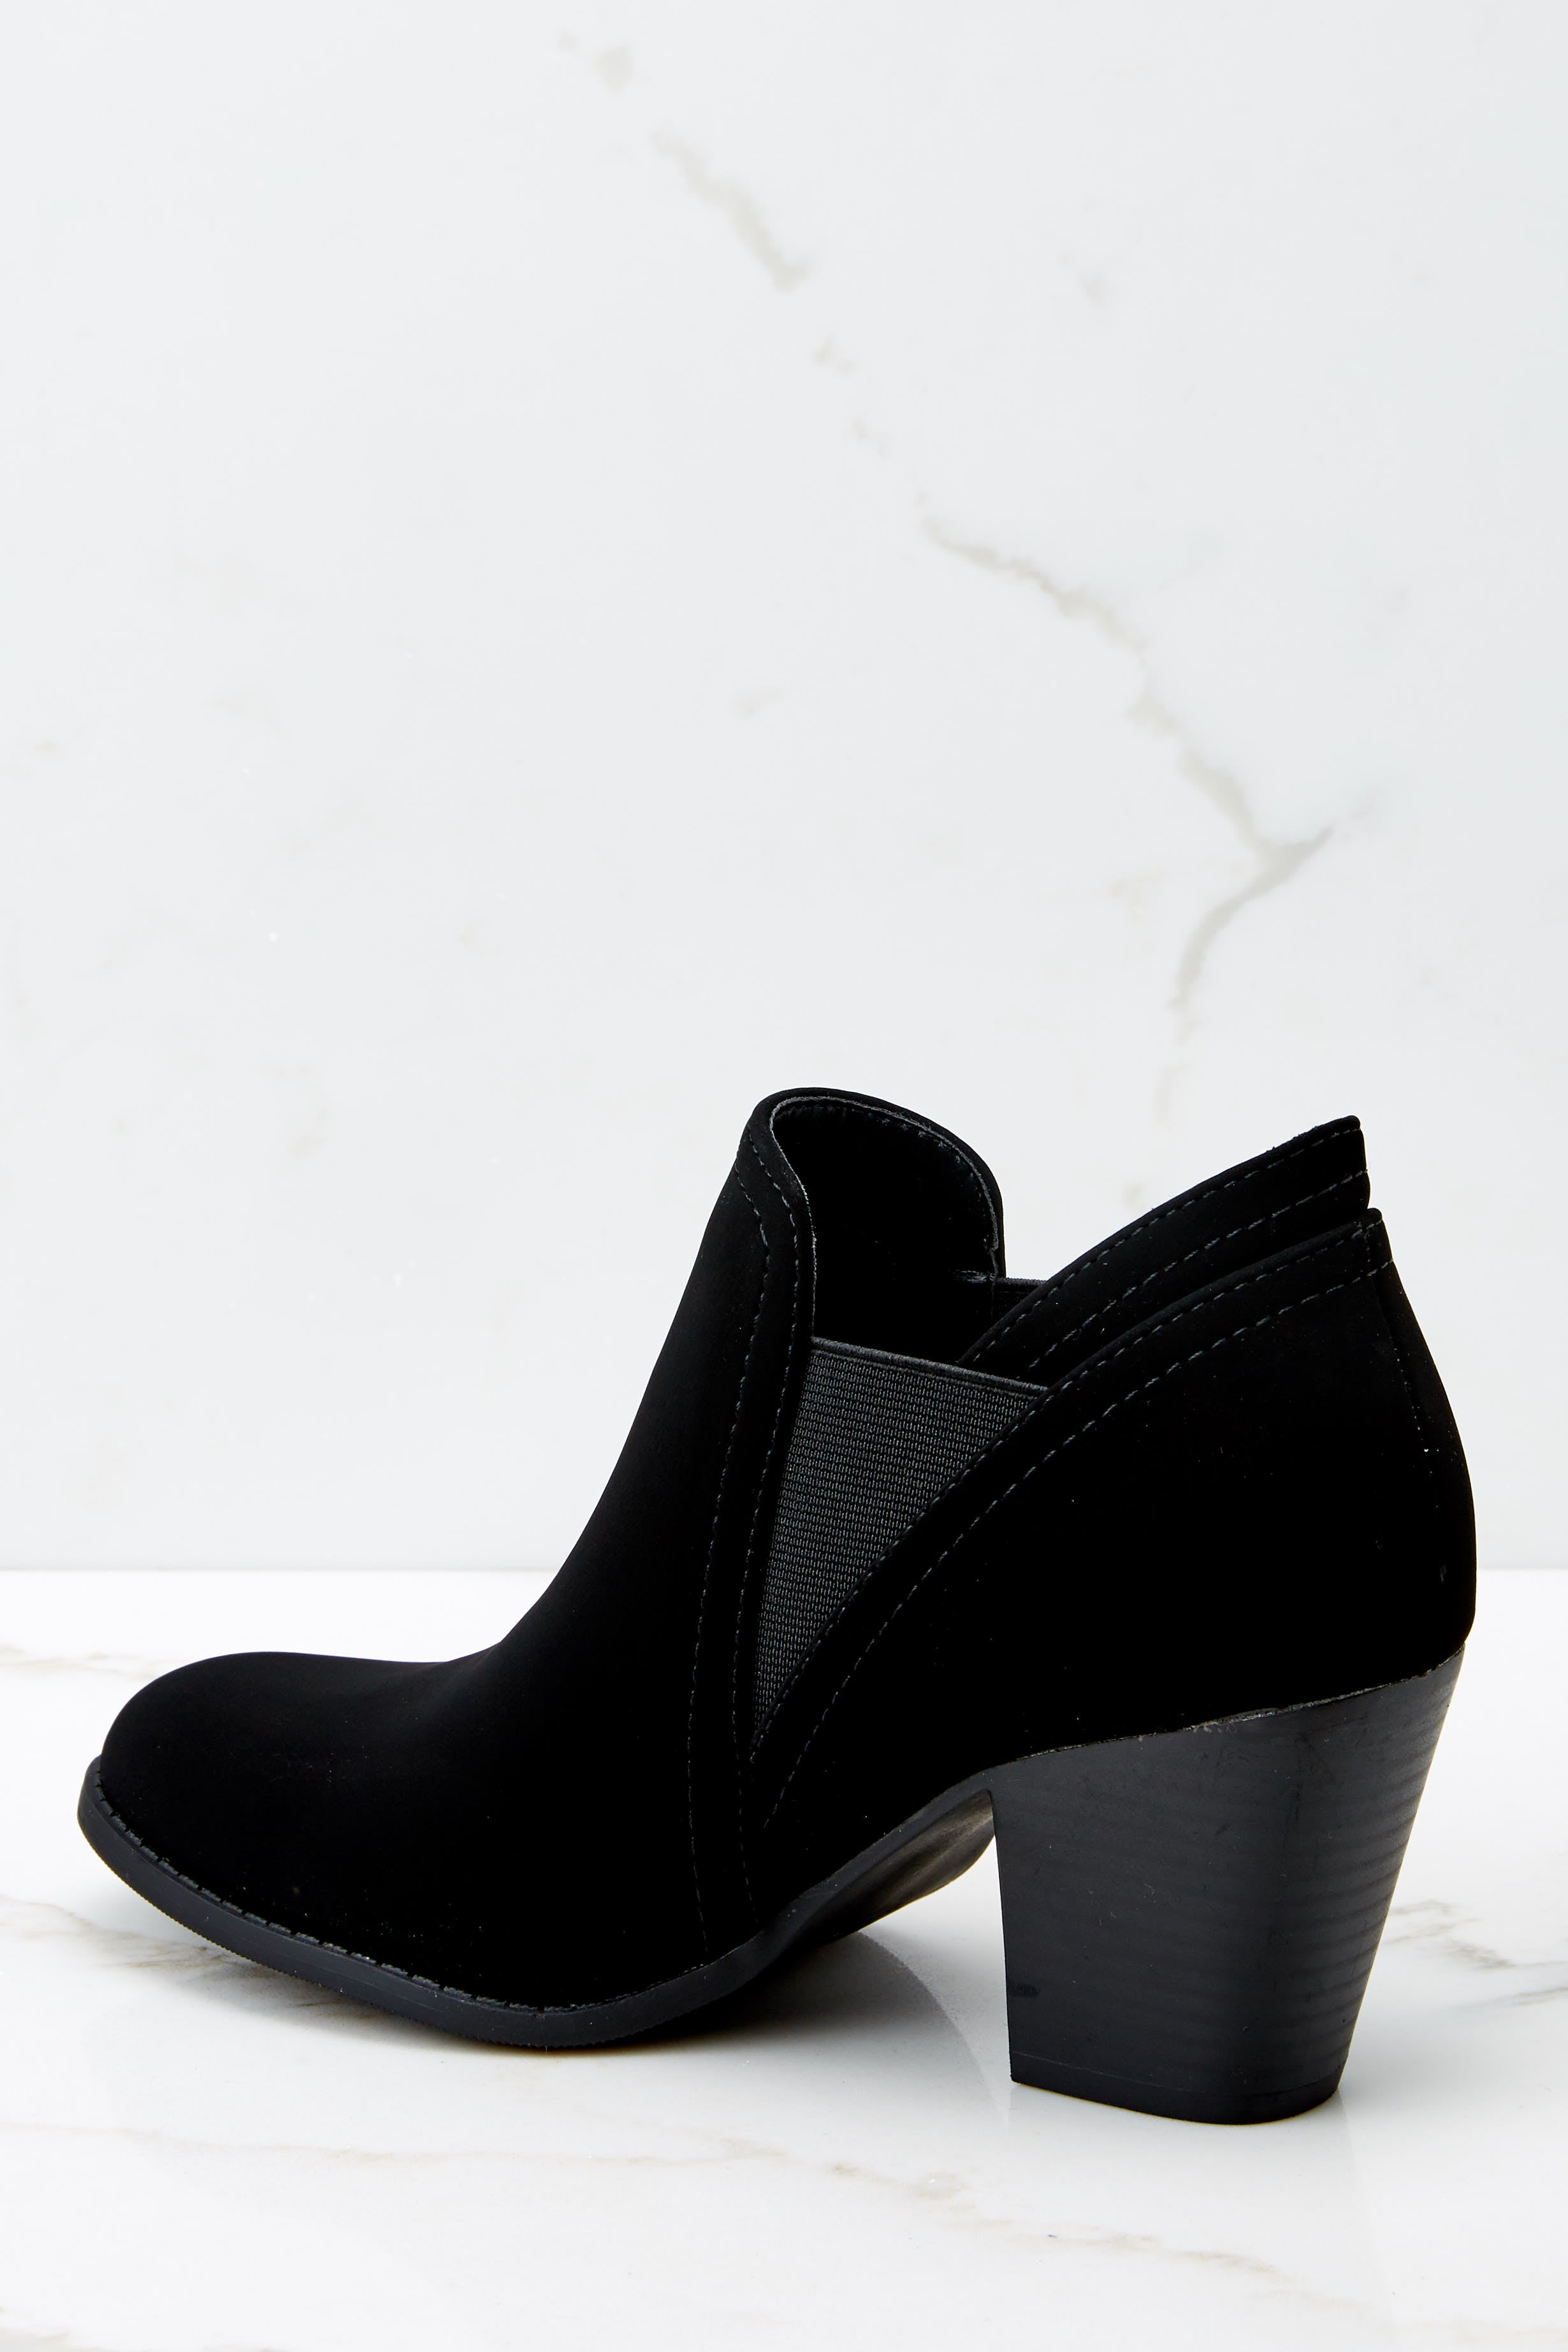 4 Make A Path Black Ankle Booties at reddress.com